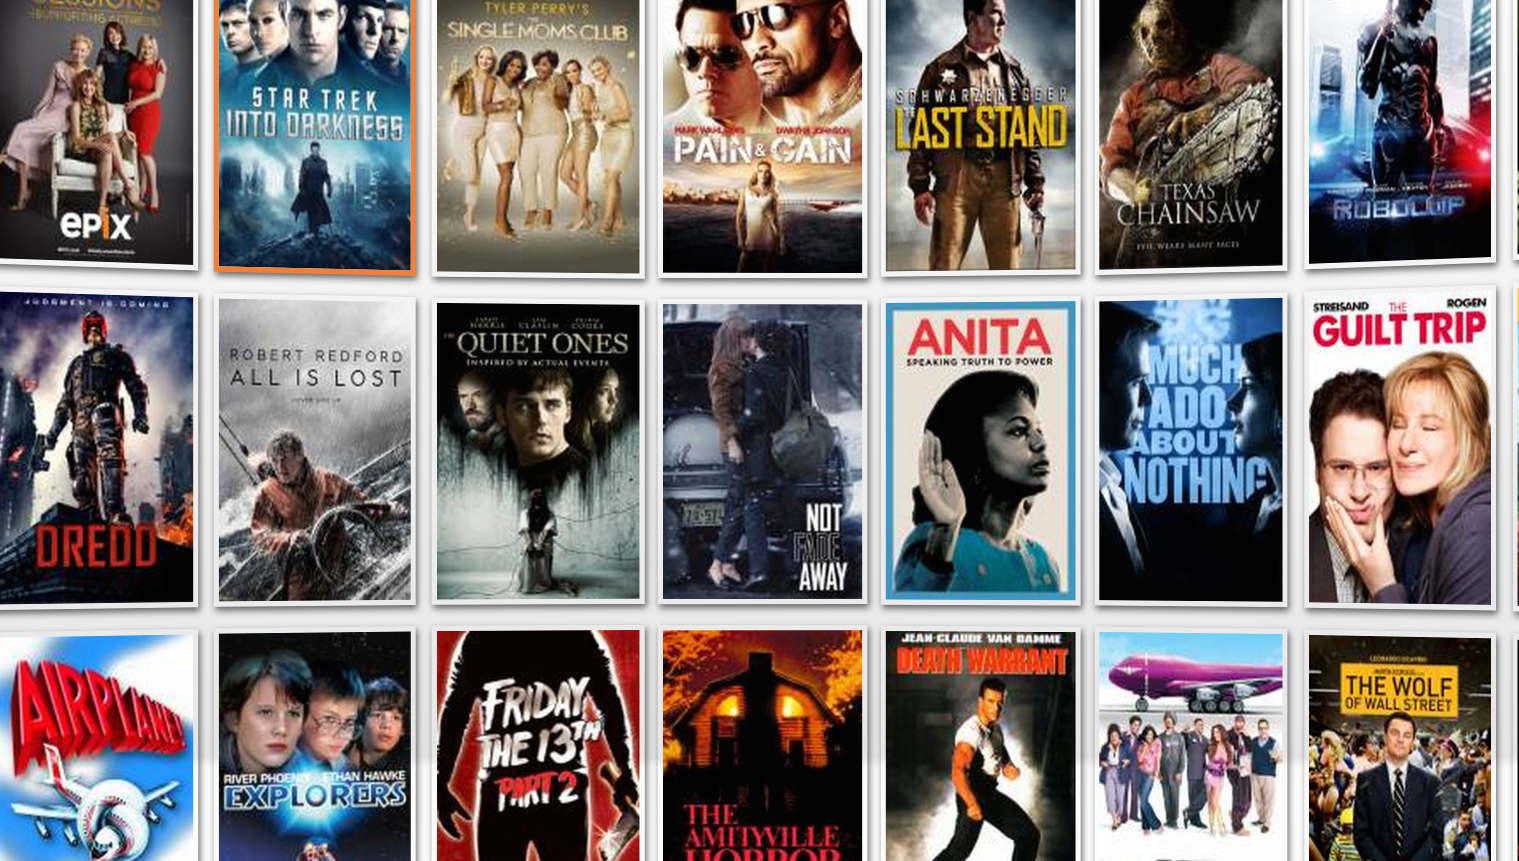 sling tv chooses epix for its first premium movie package – consumerist